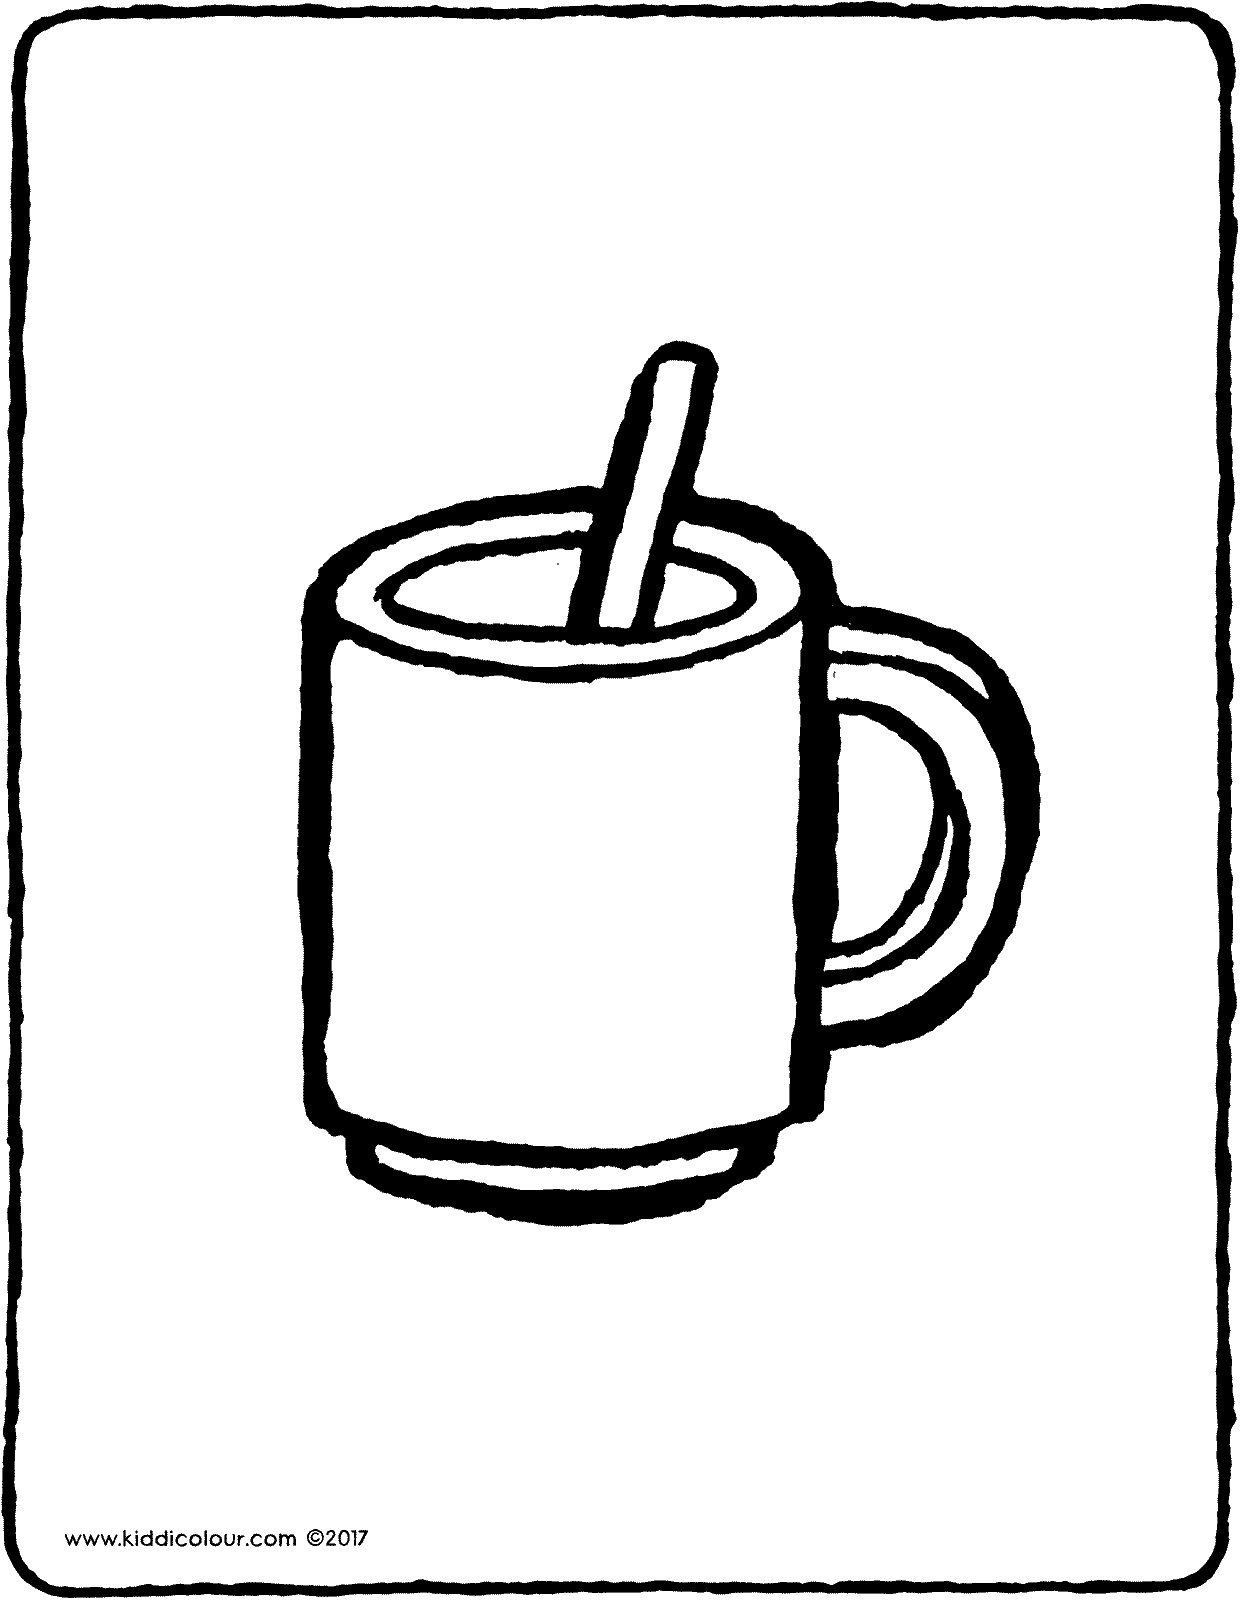 mug and spoon colouring page page drawing picture 01V